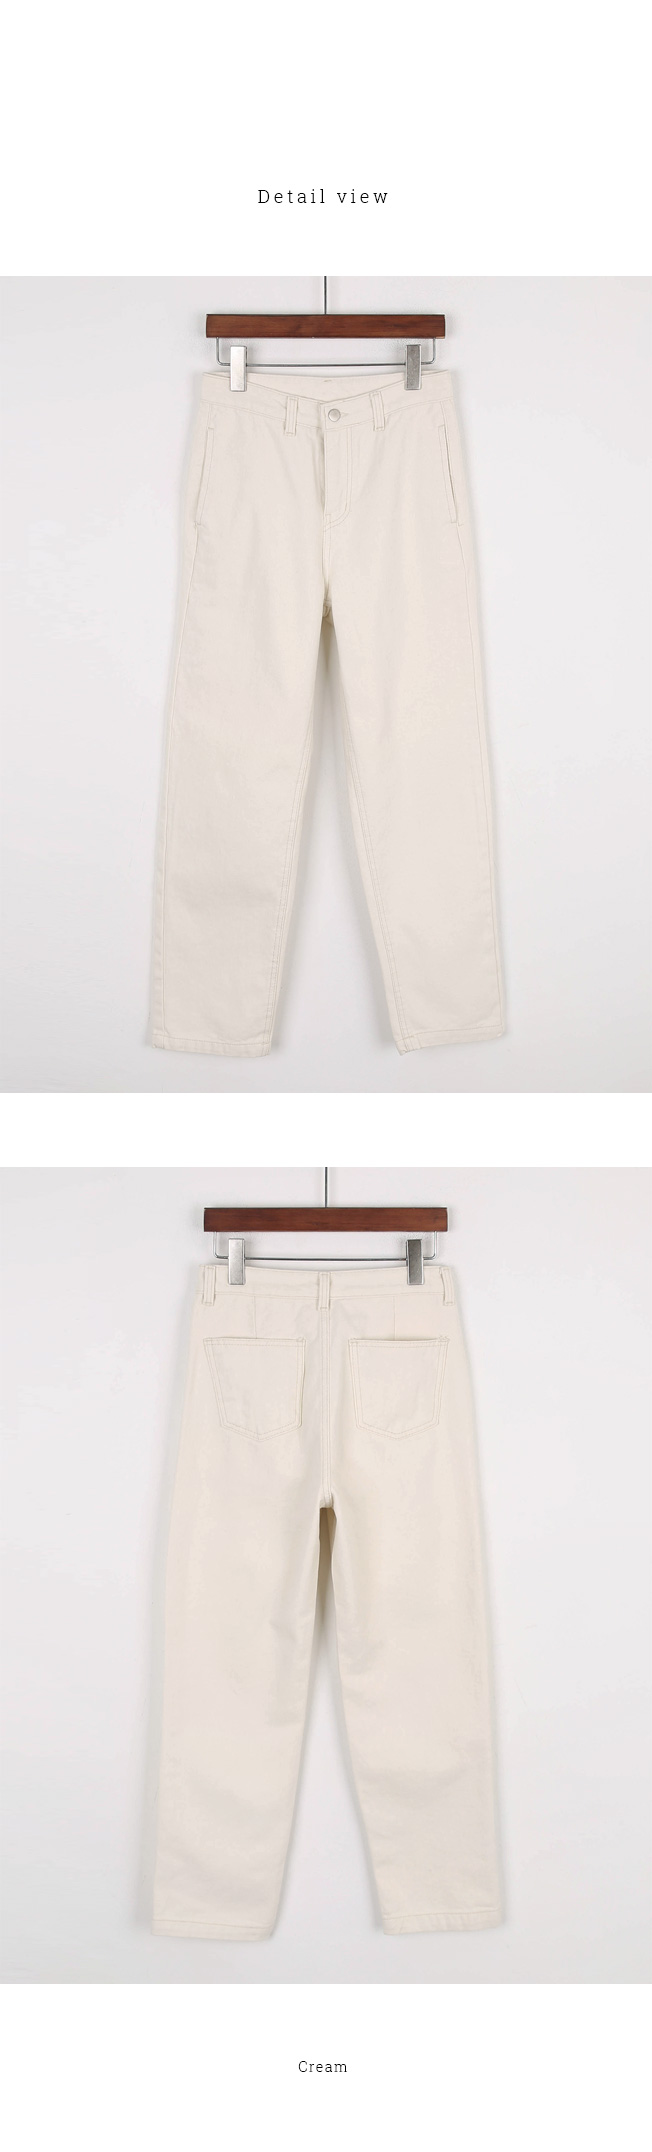 Brushed cream pants